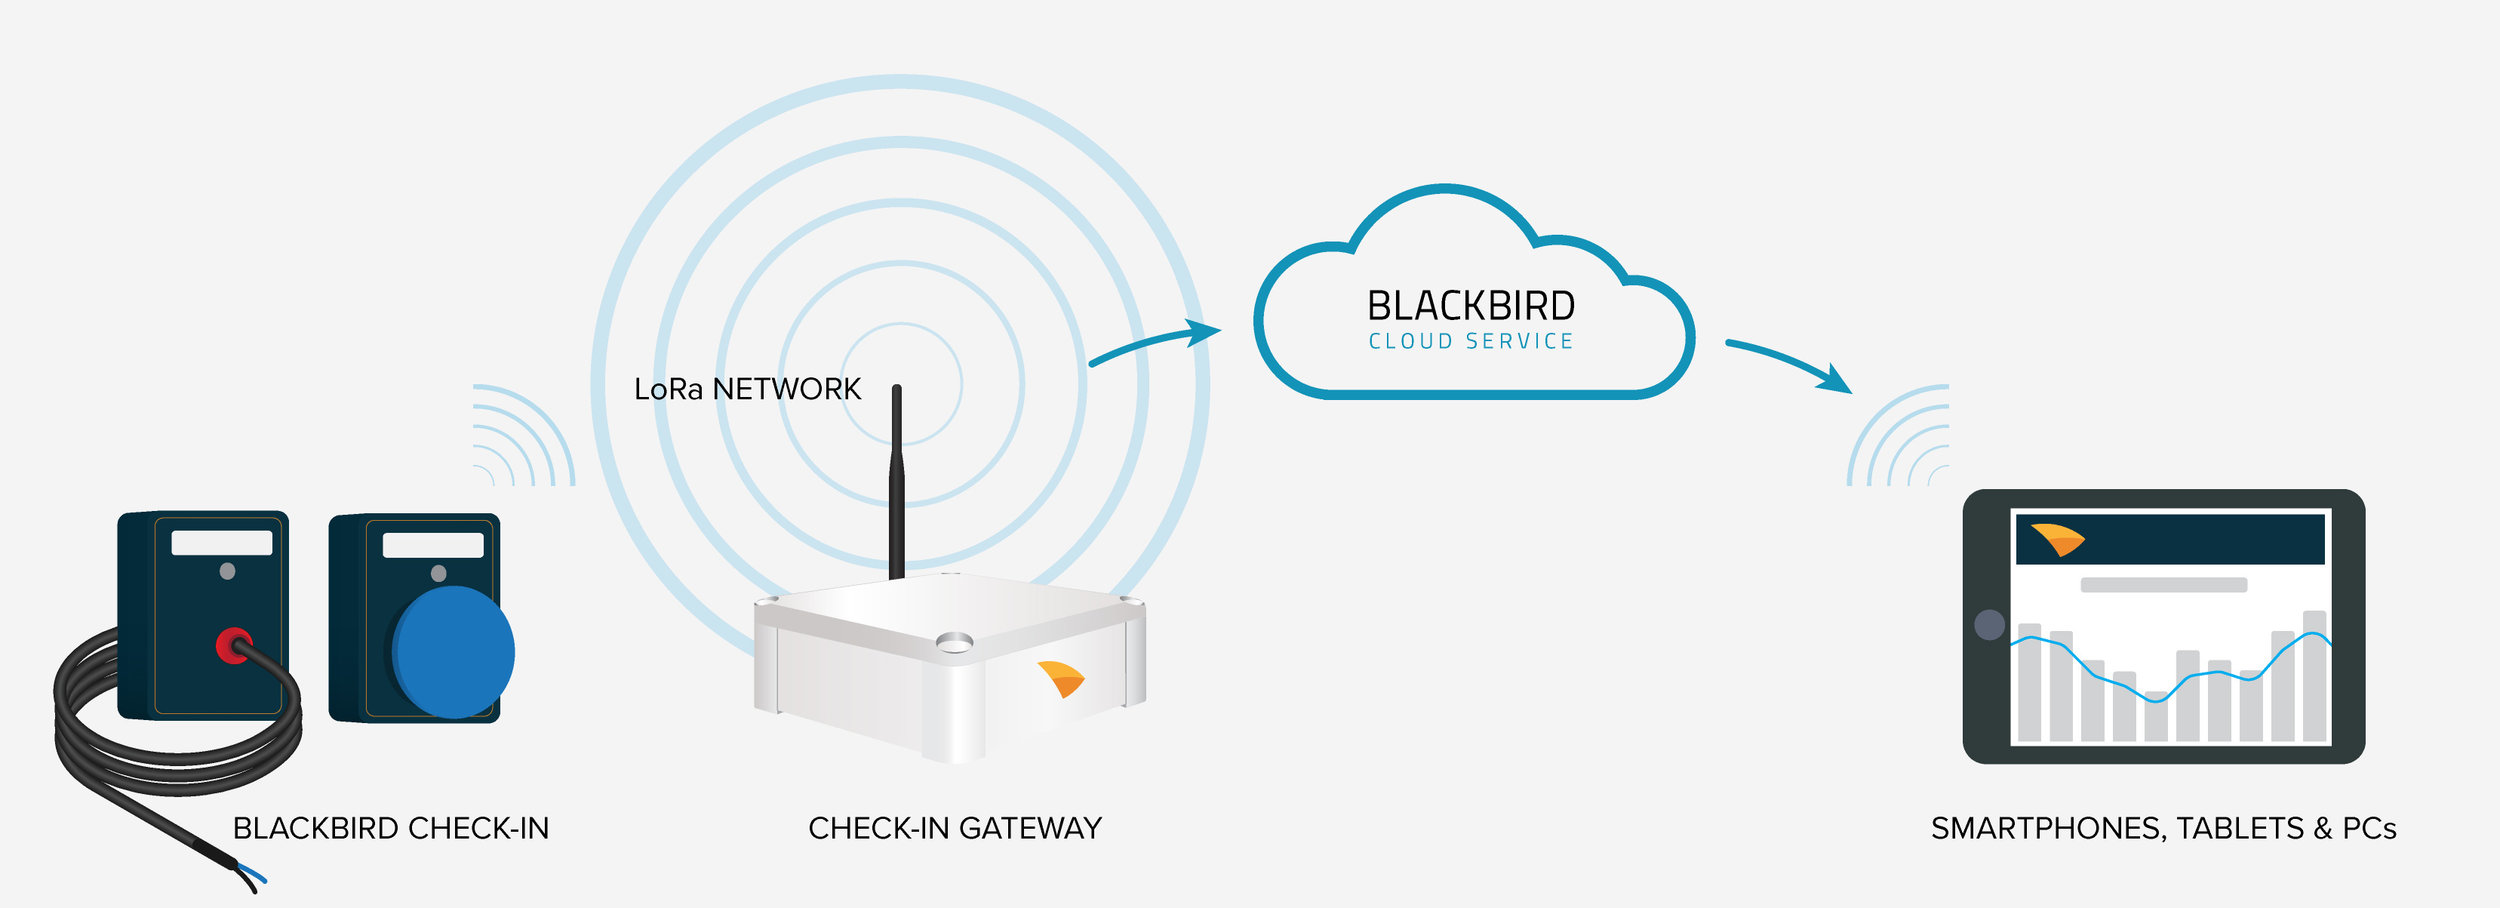 LoRa Technology - The Check-in gateway can create up to kilometers of wireless LoRa network signal with low power consumption, where thousands of battery-driven IoT devices can be connected.*End-to-end solution: Blackbird provides LoRa gateway to customers.